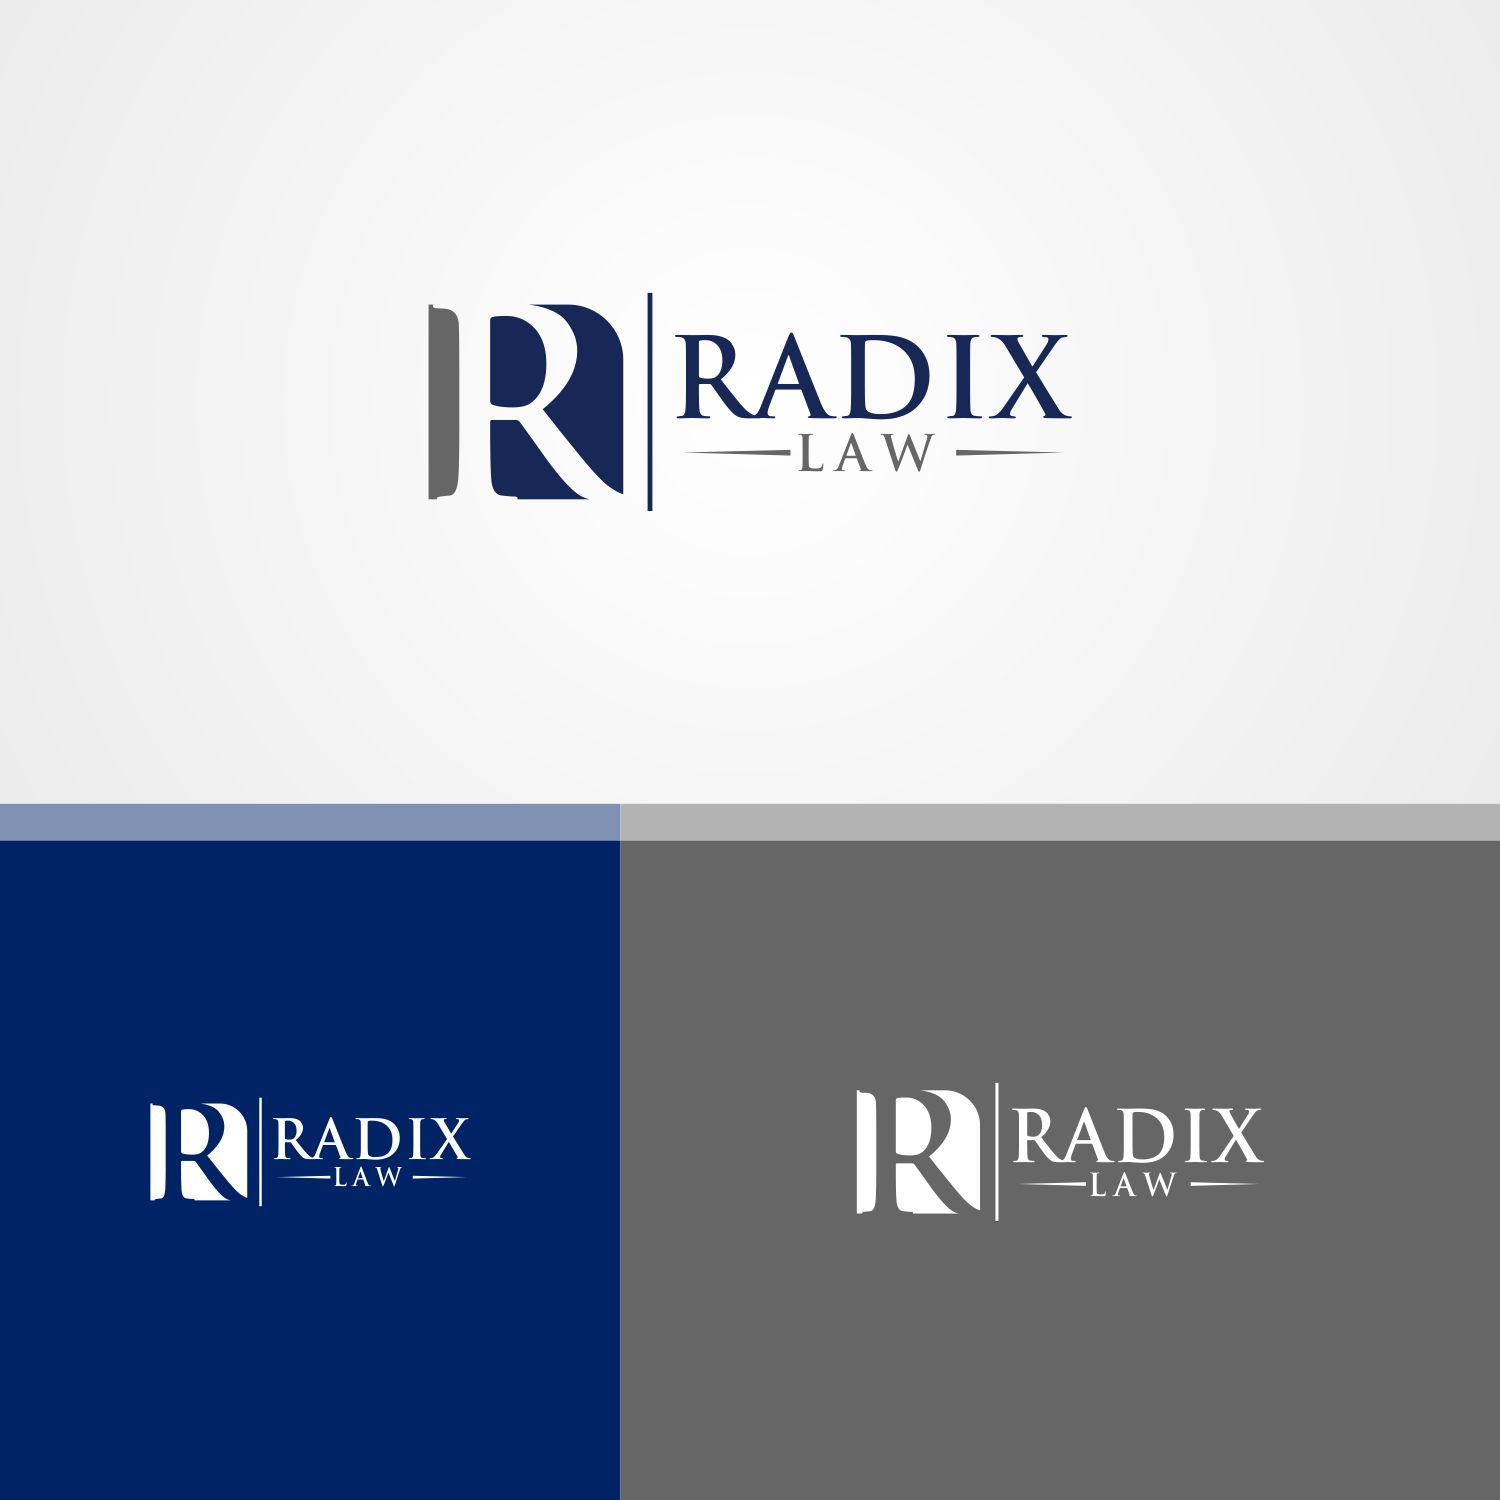 Upmarket, Serious, Law Firm Logo Design for Radix Law by